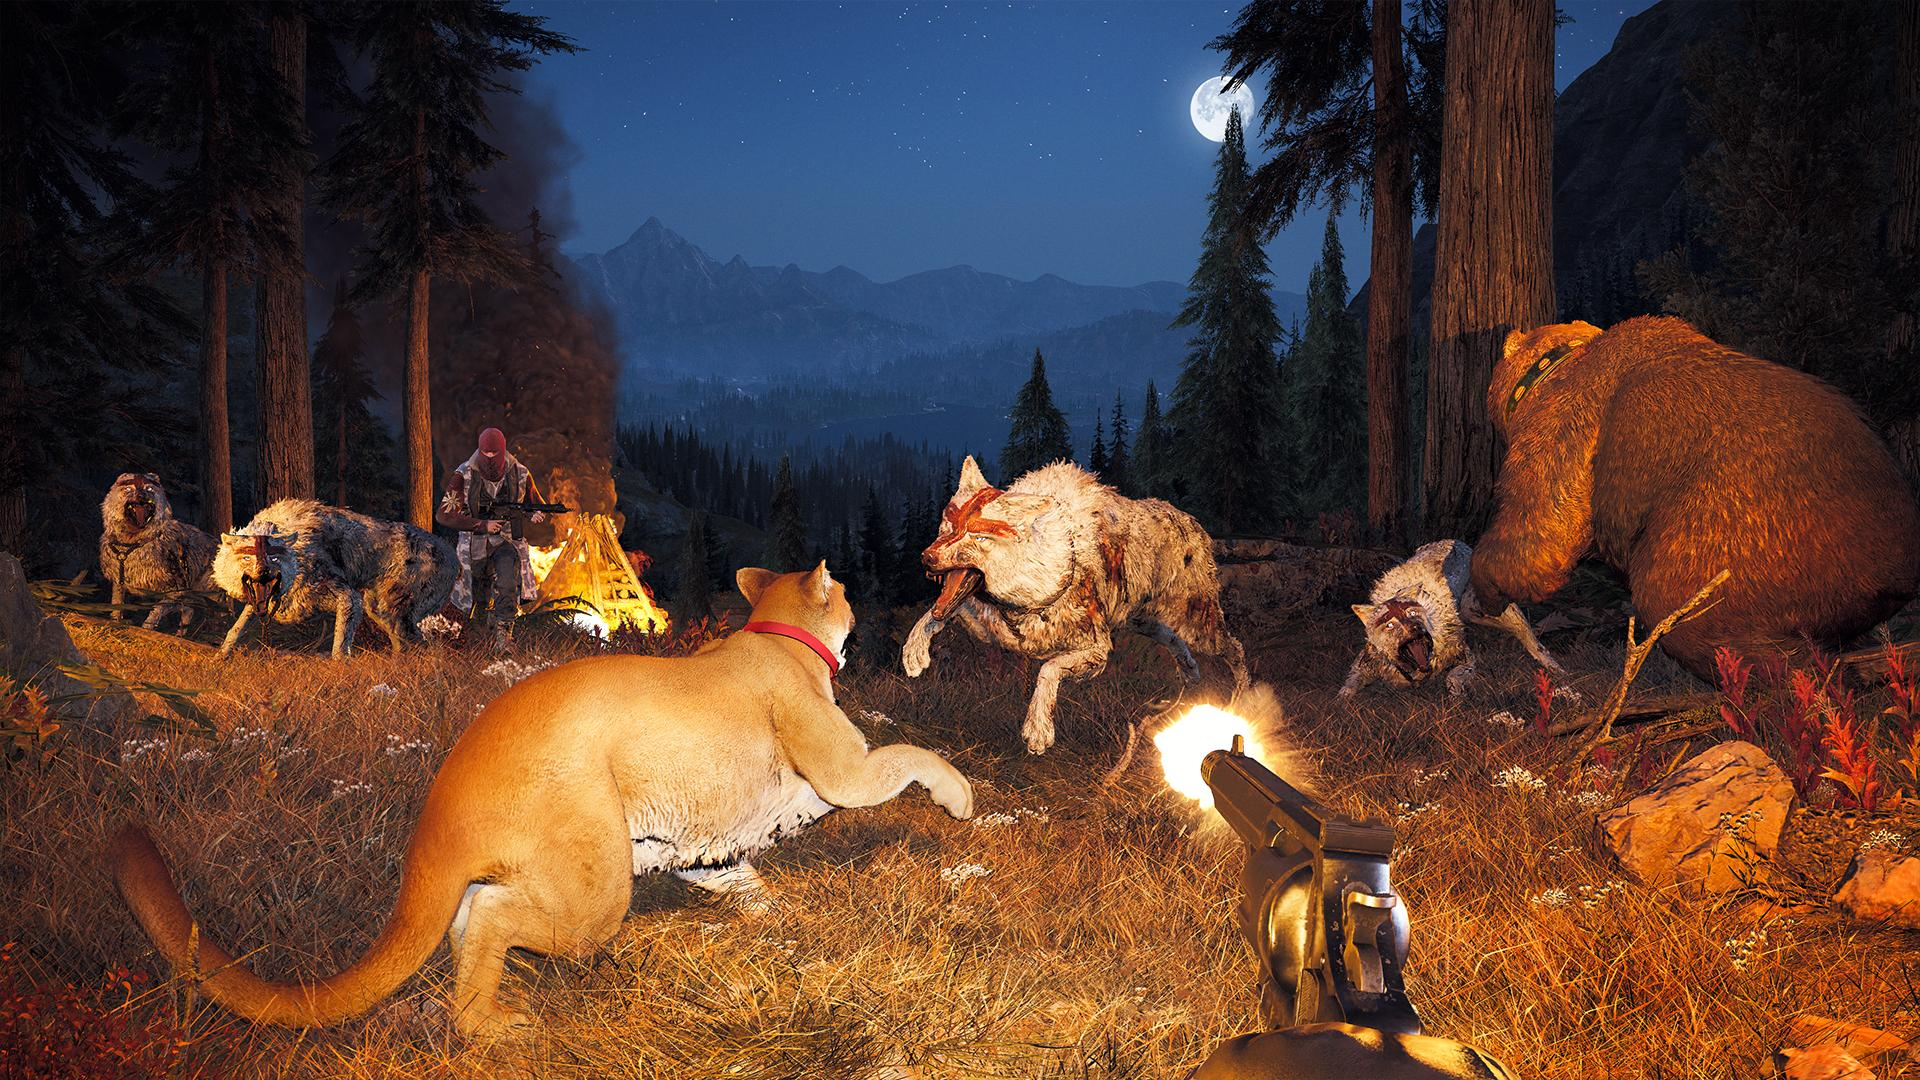 Wolves roam in the hills so be sure to keep your wits about you